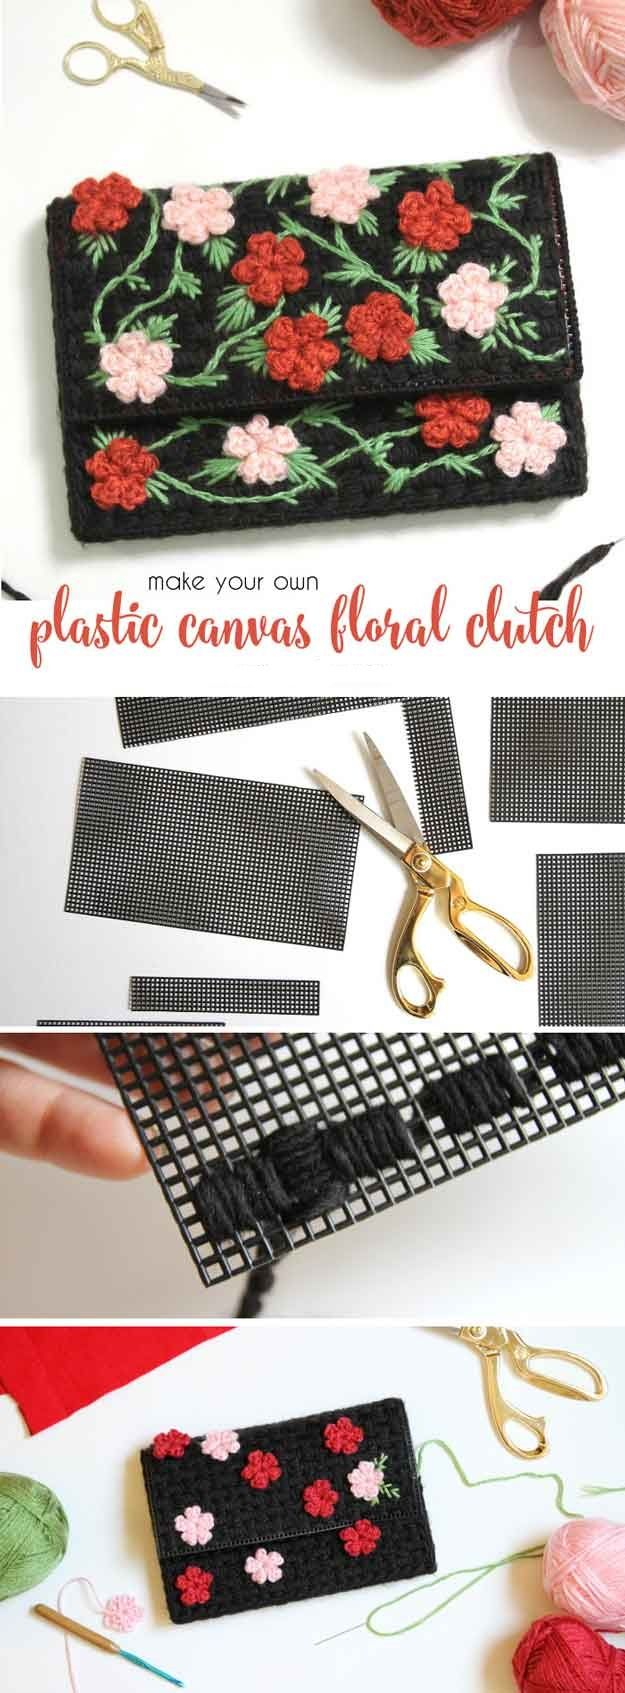 Diy Plastic Canvas Floral Clutch